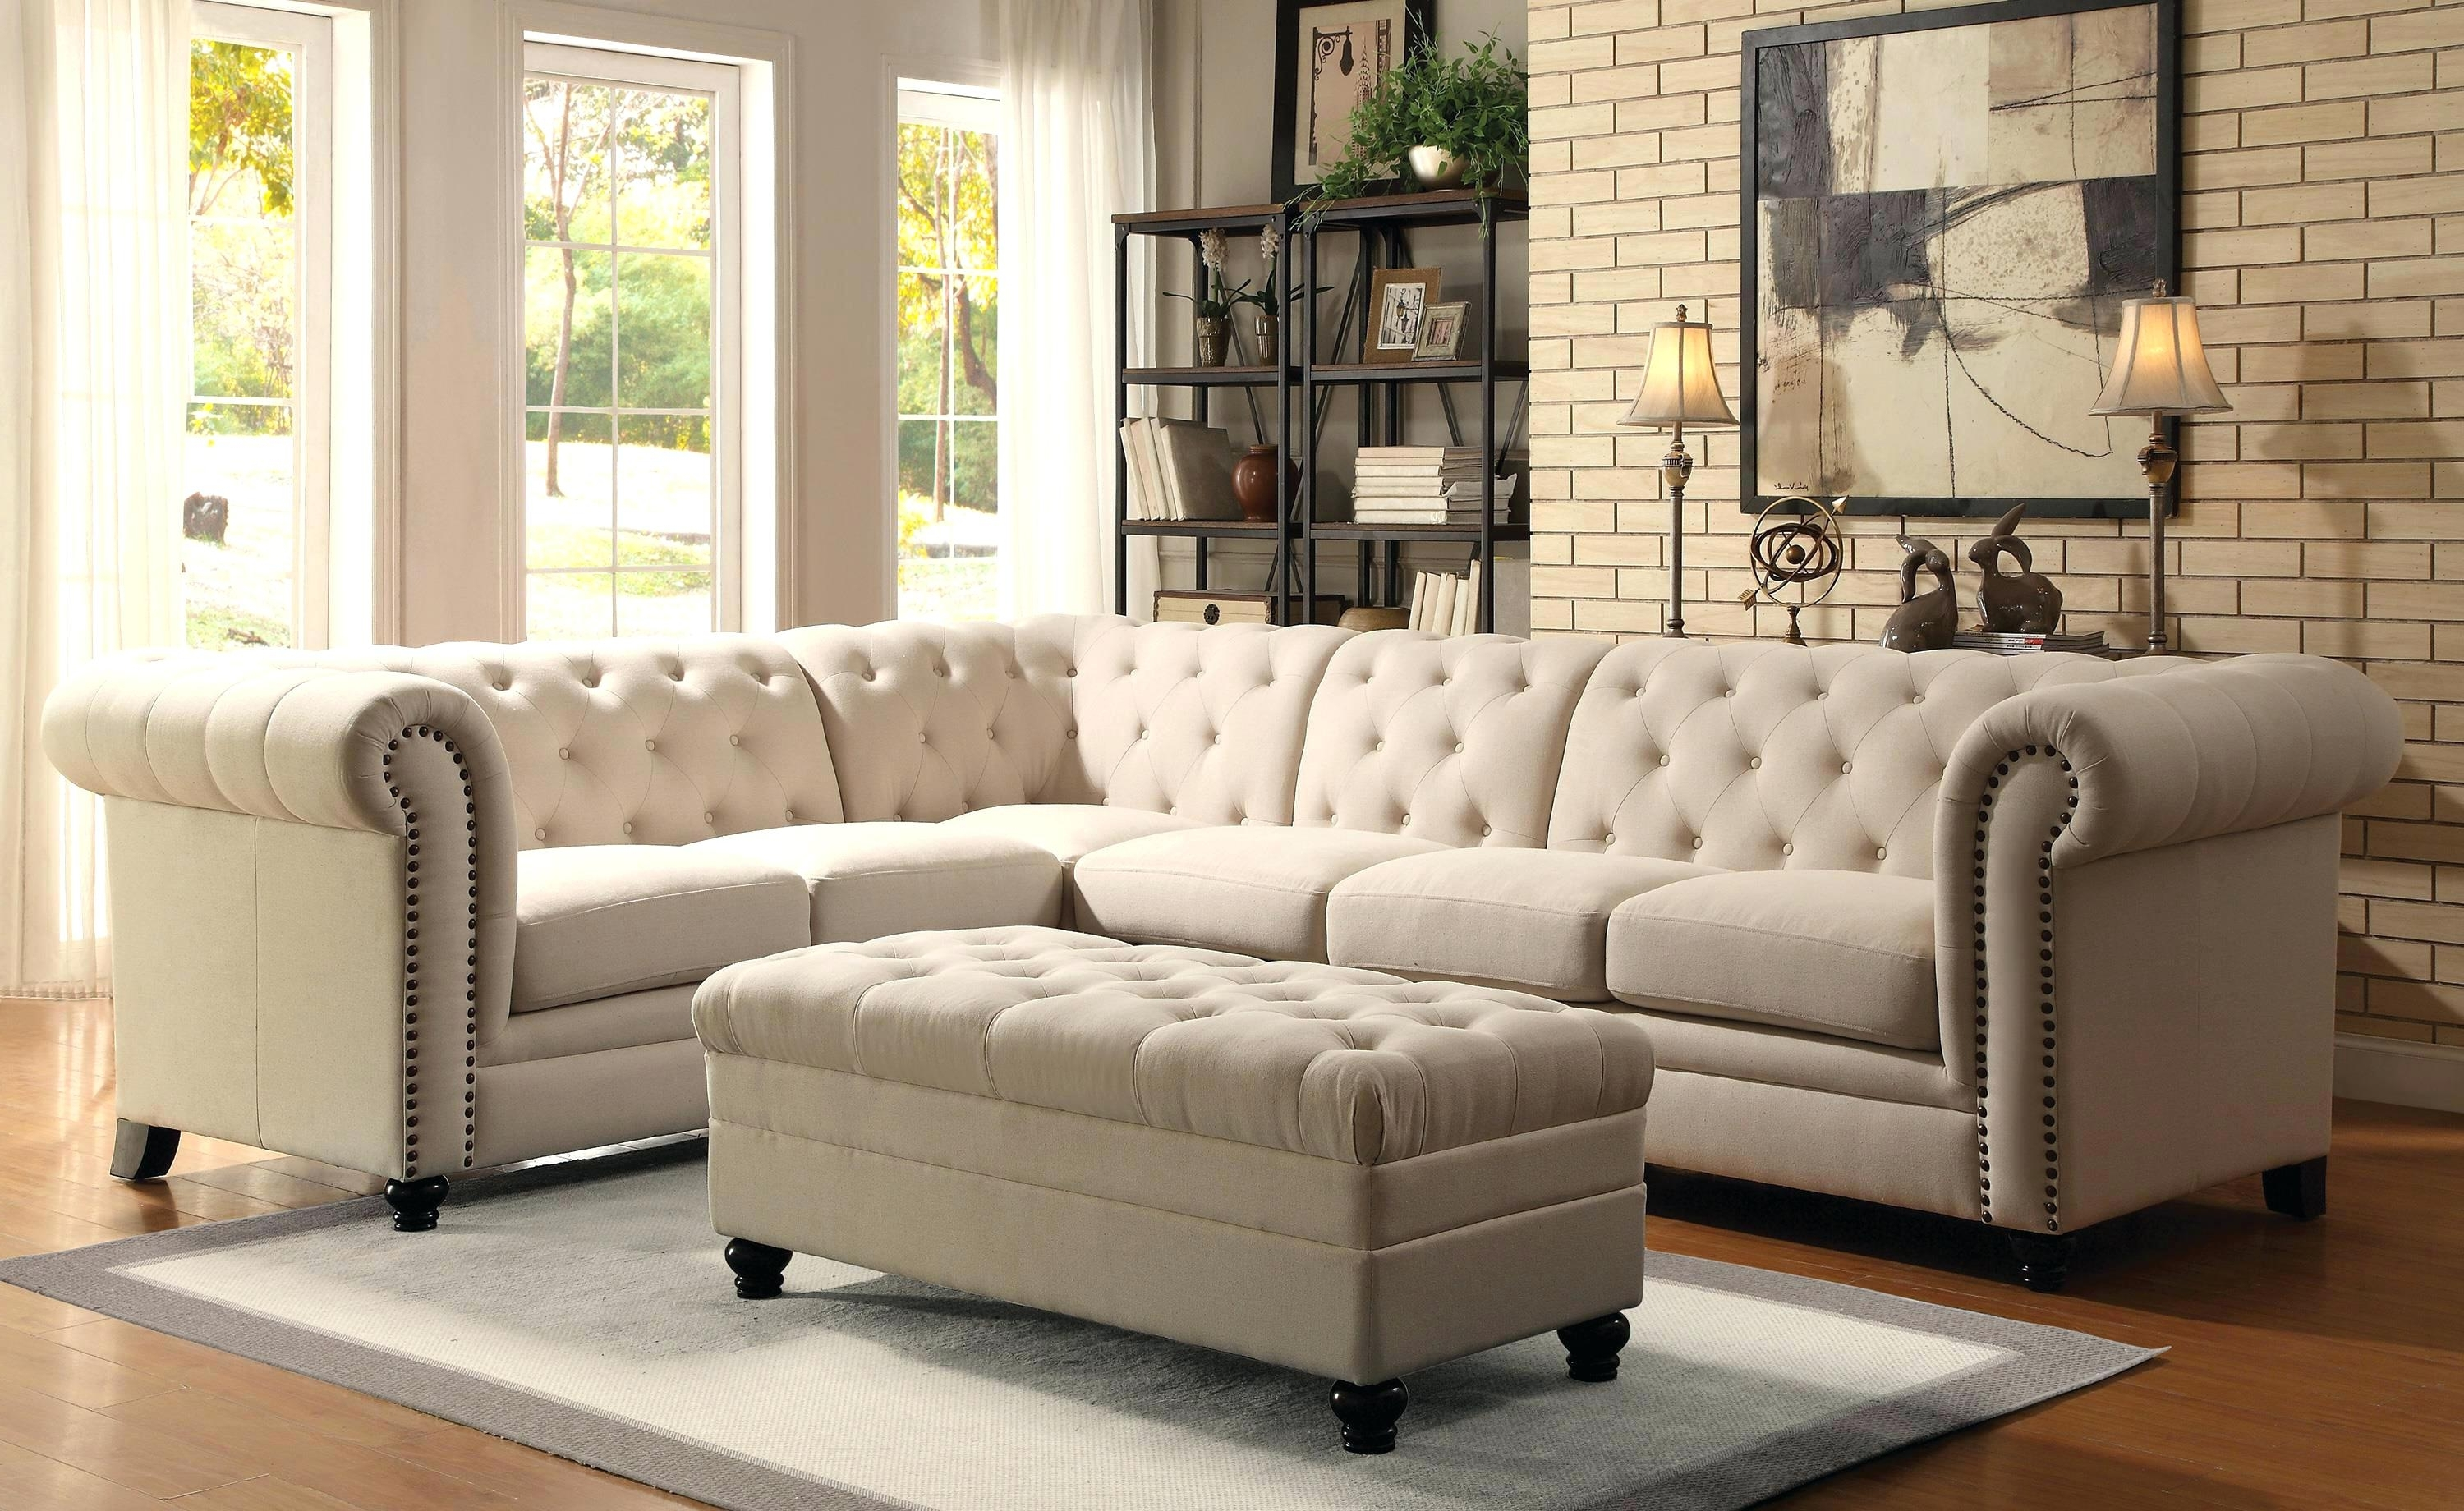 2018 London Ontario Sectional Sofas For L Sectional Sofa Shad Sectiona 1810282 Slipcovers Walmart Covers (View 10 of 20)